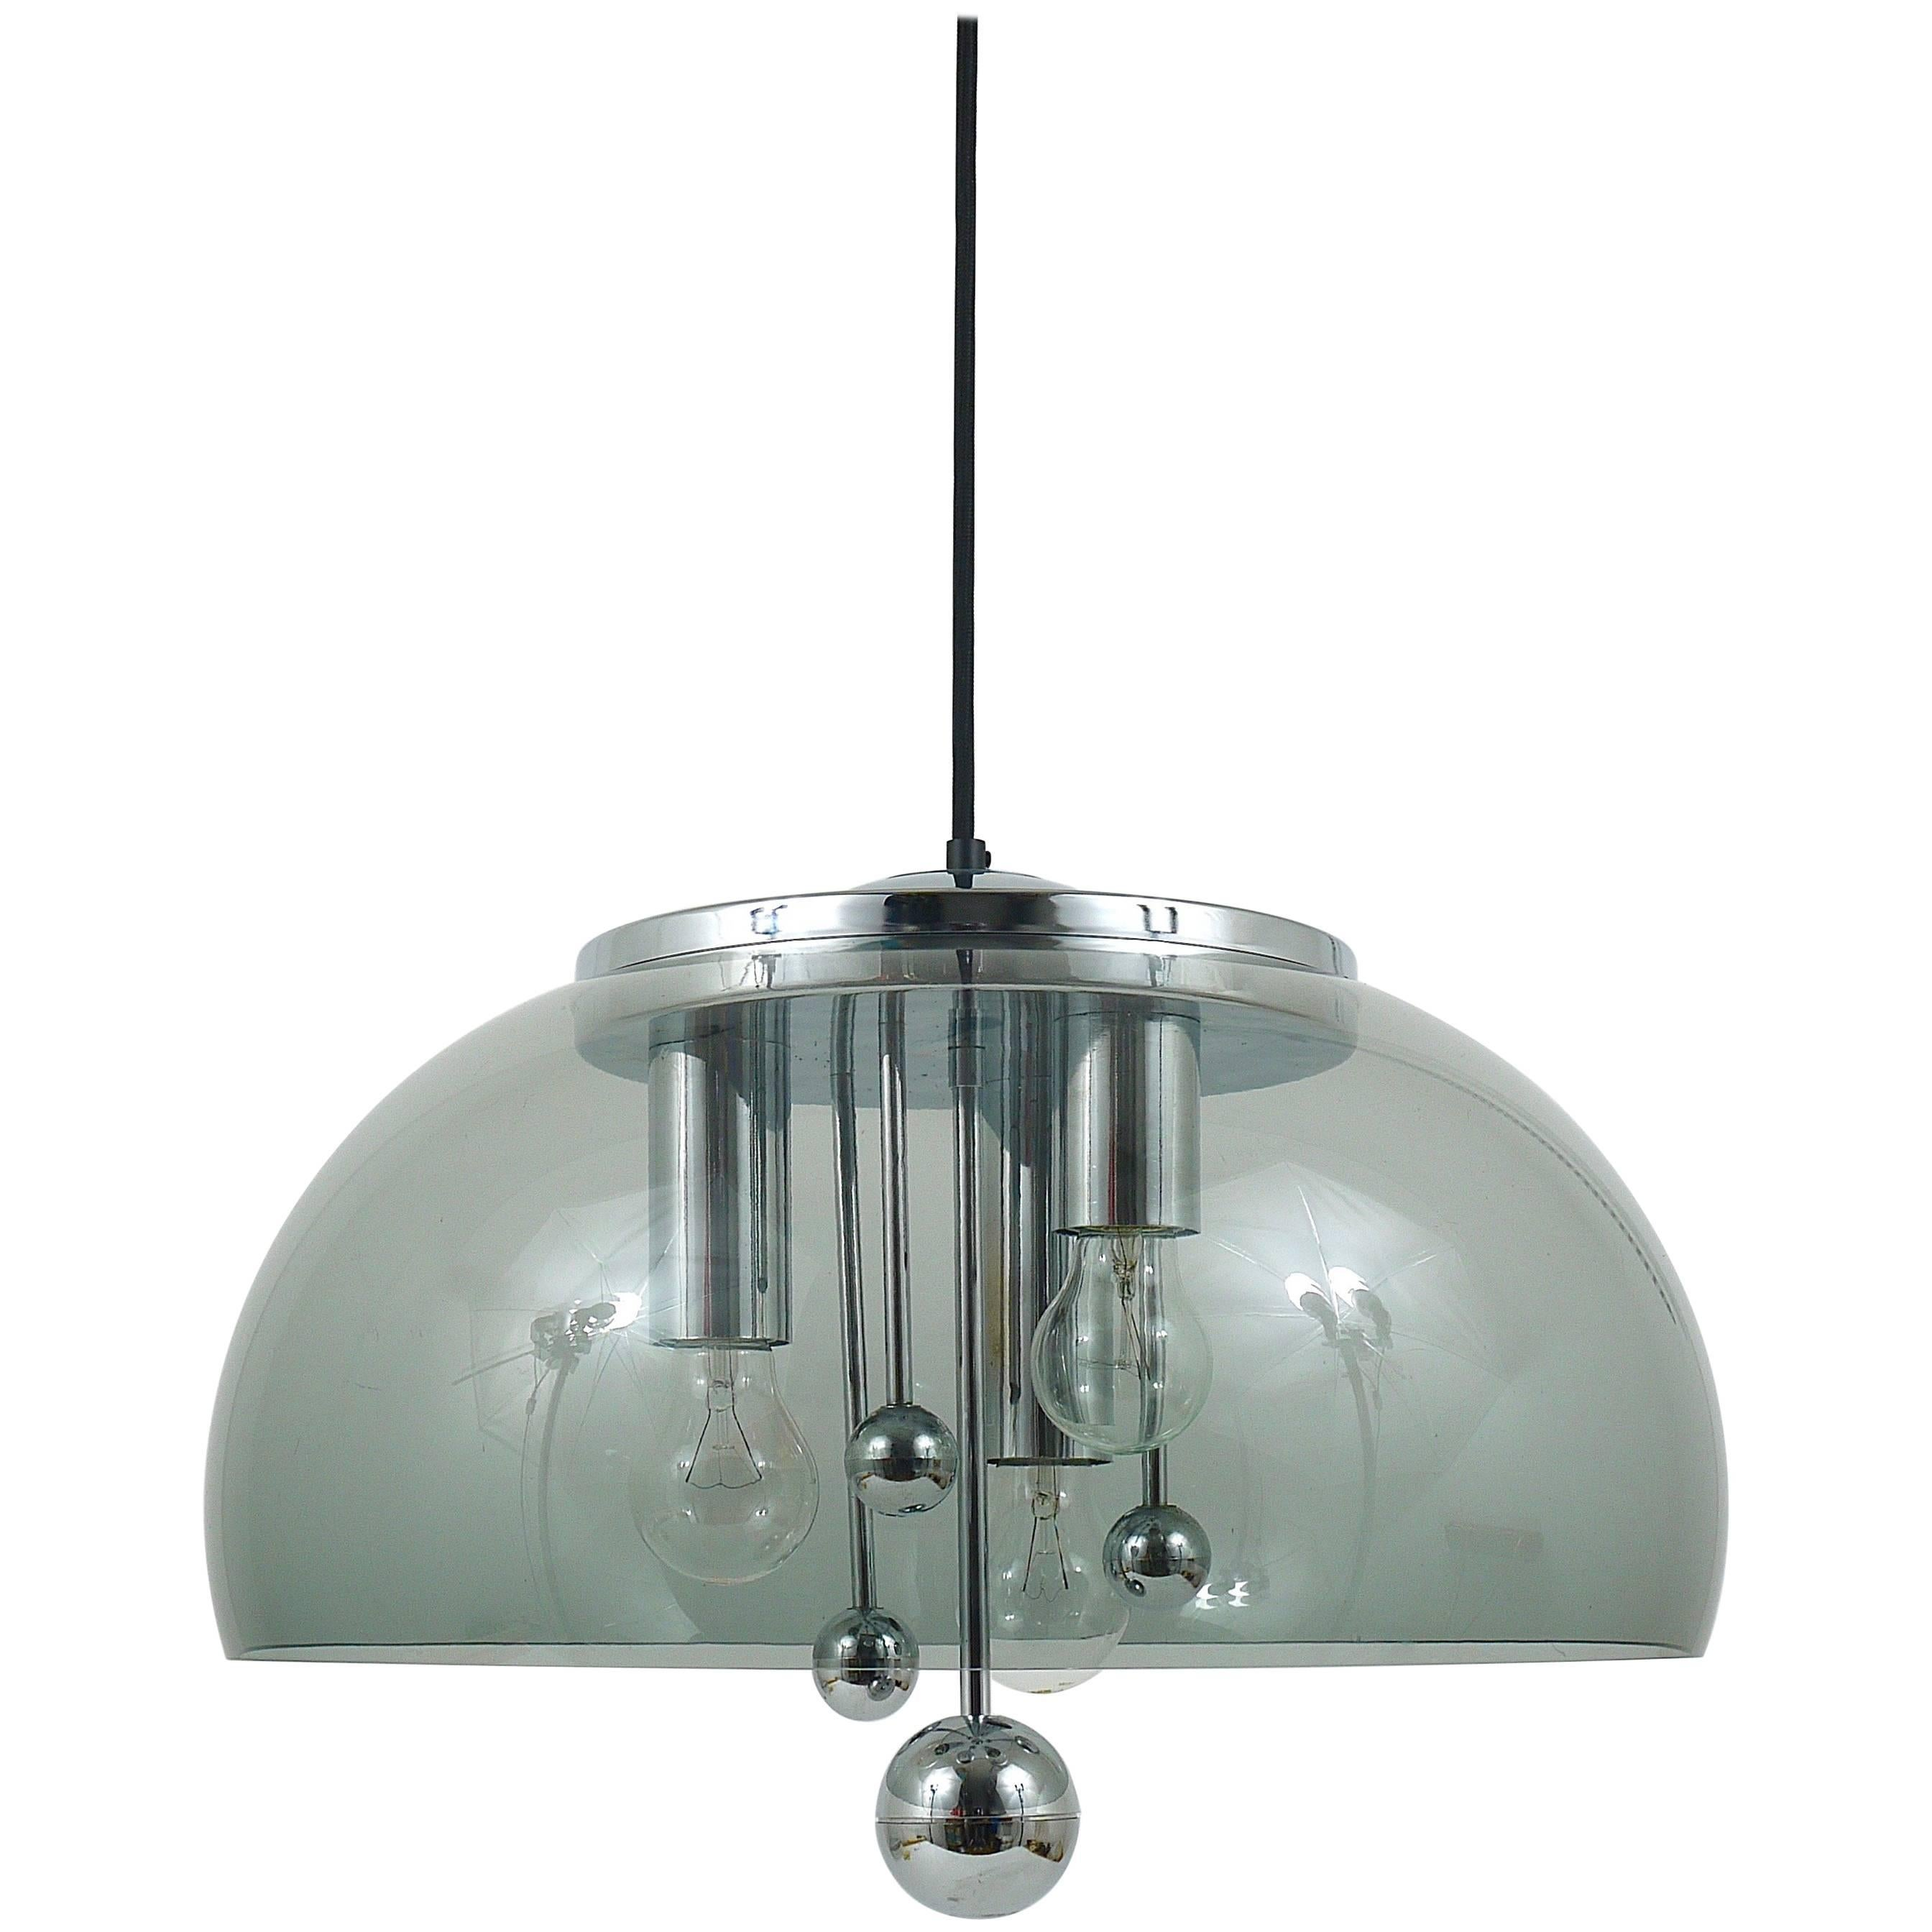 Midcentury Space Age Globe Pendant Lamp with Chromed Spheres, Germany, 1970s